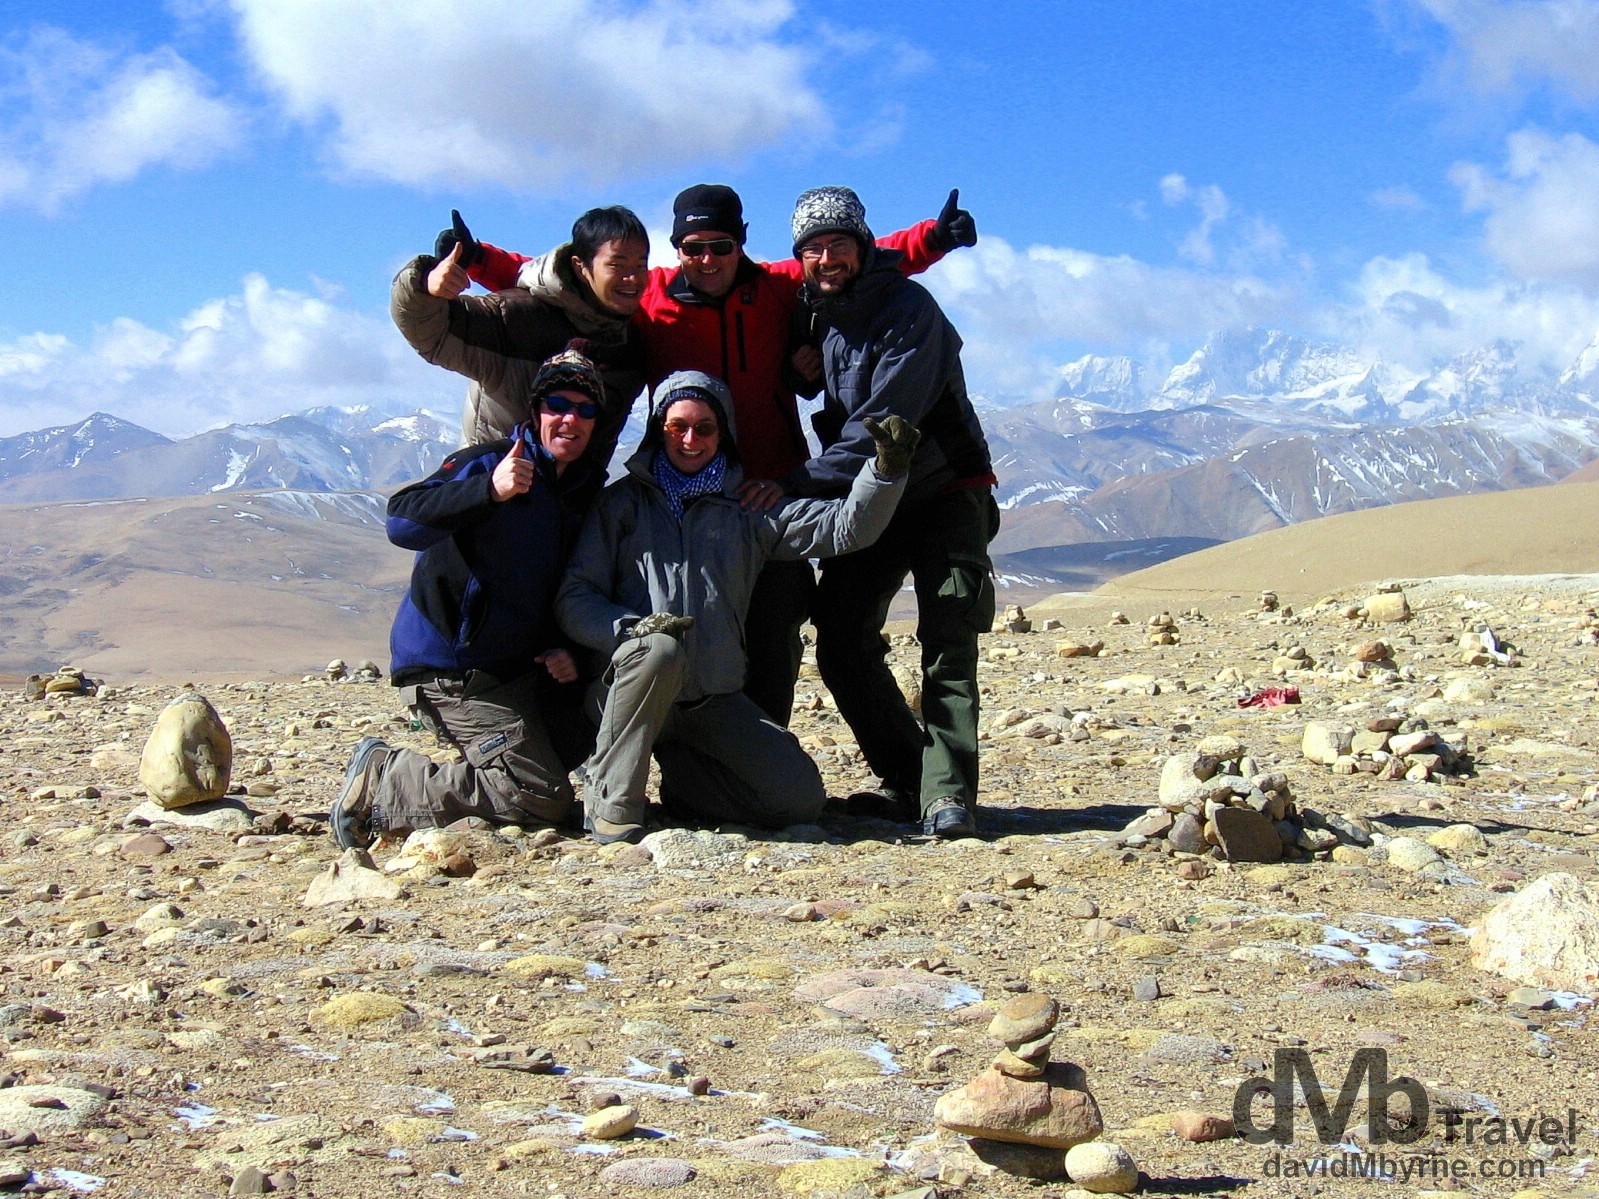 On the 5,050-metre (16,650 ft) Lalung La Pass on the Friendship Highway from Tingri to Zhangmu, Tibet. March 3rd 2008